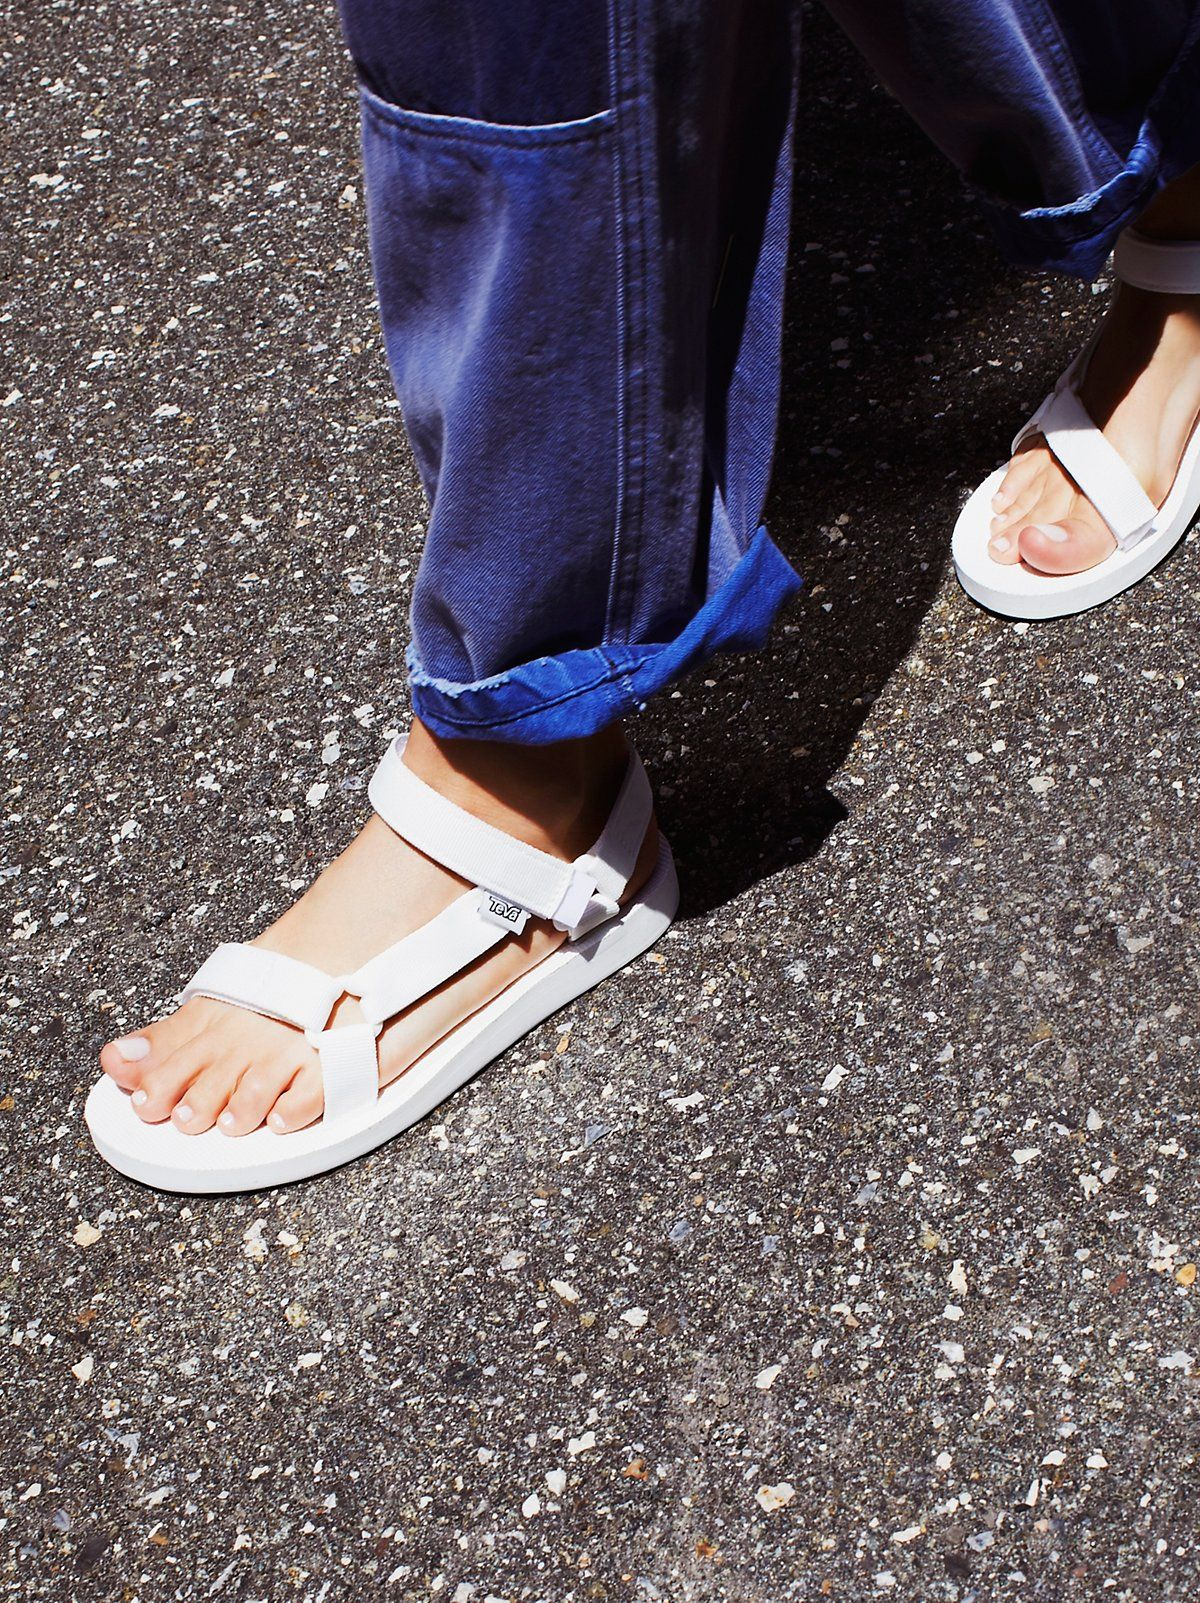 Original Universal Teva Teva S Classic Universal Sandal Featuring An Easy Comfortable Design For All Day Wear Comfort Teva Sandals Teva Ankle Strap Heels